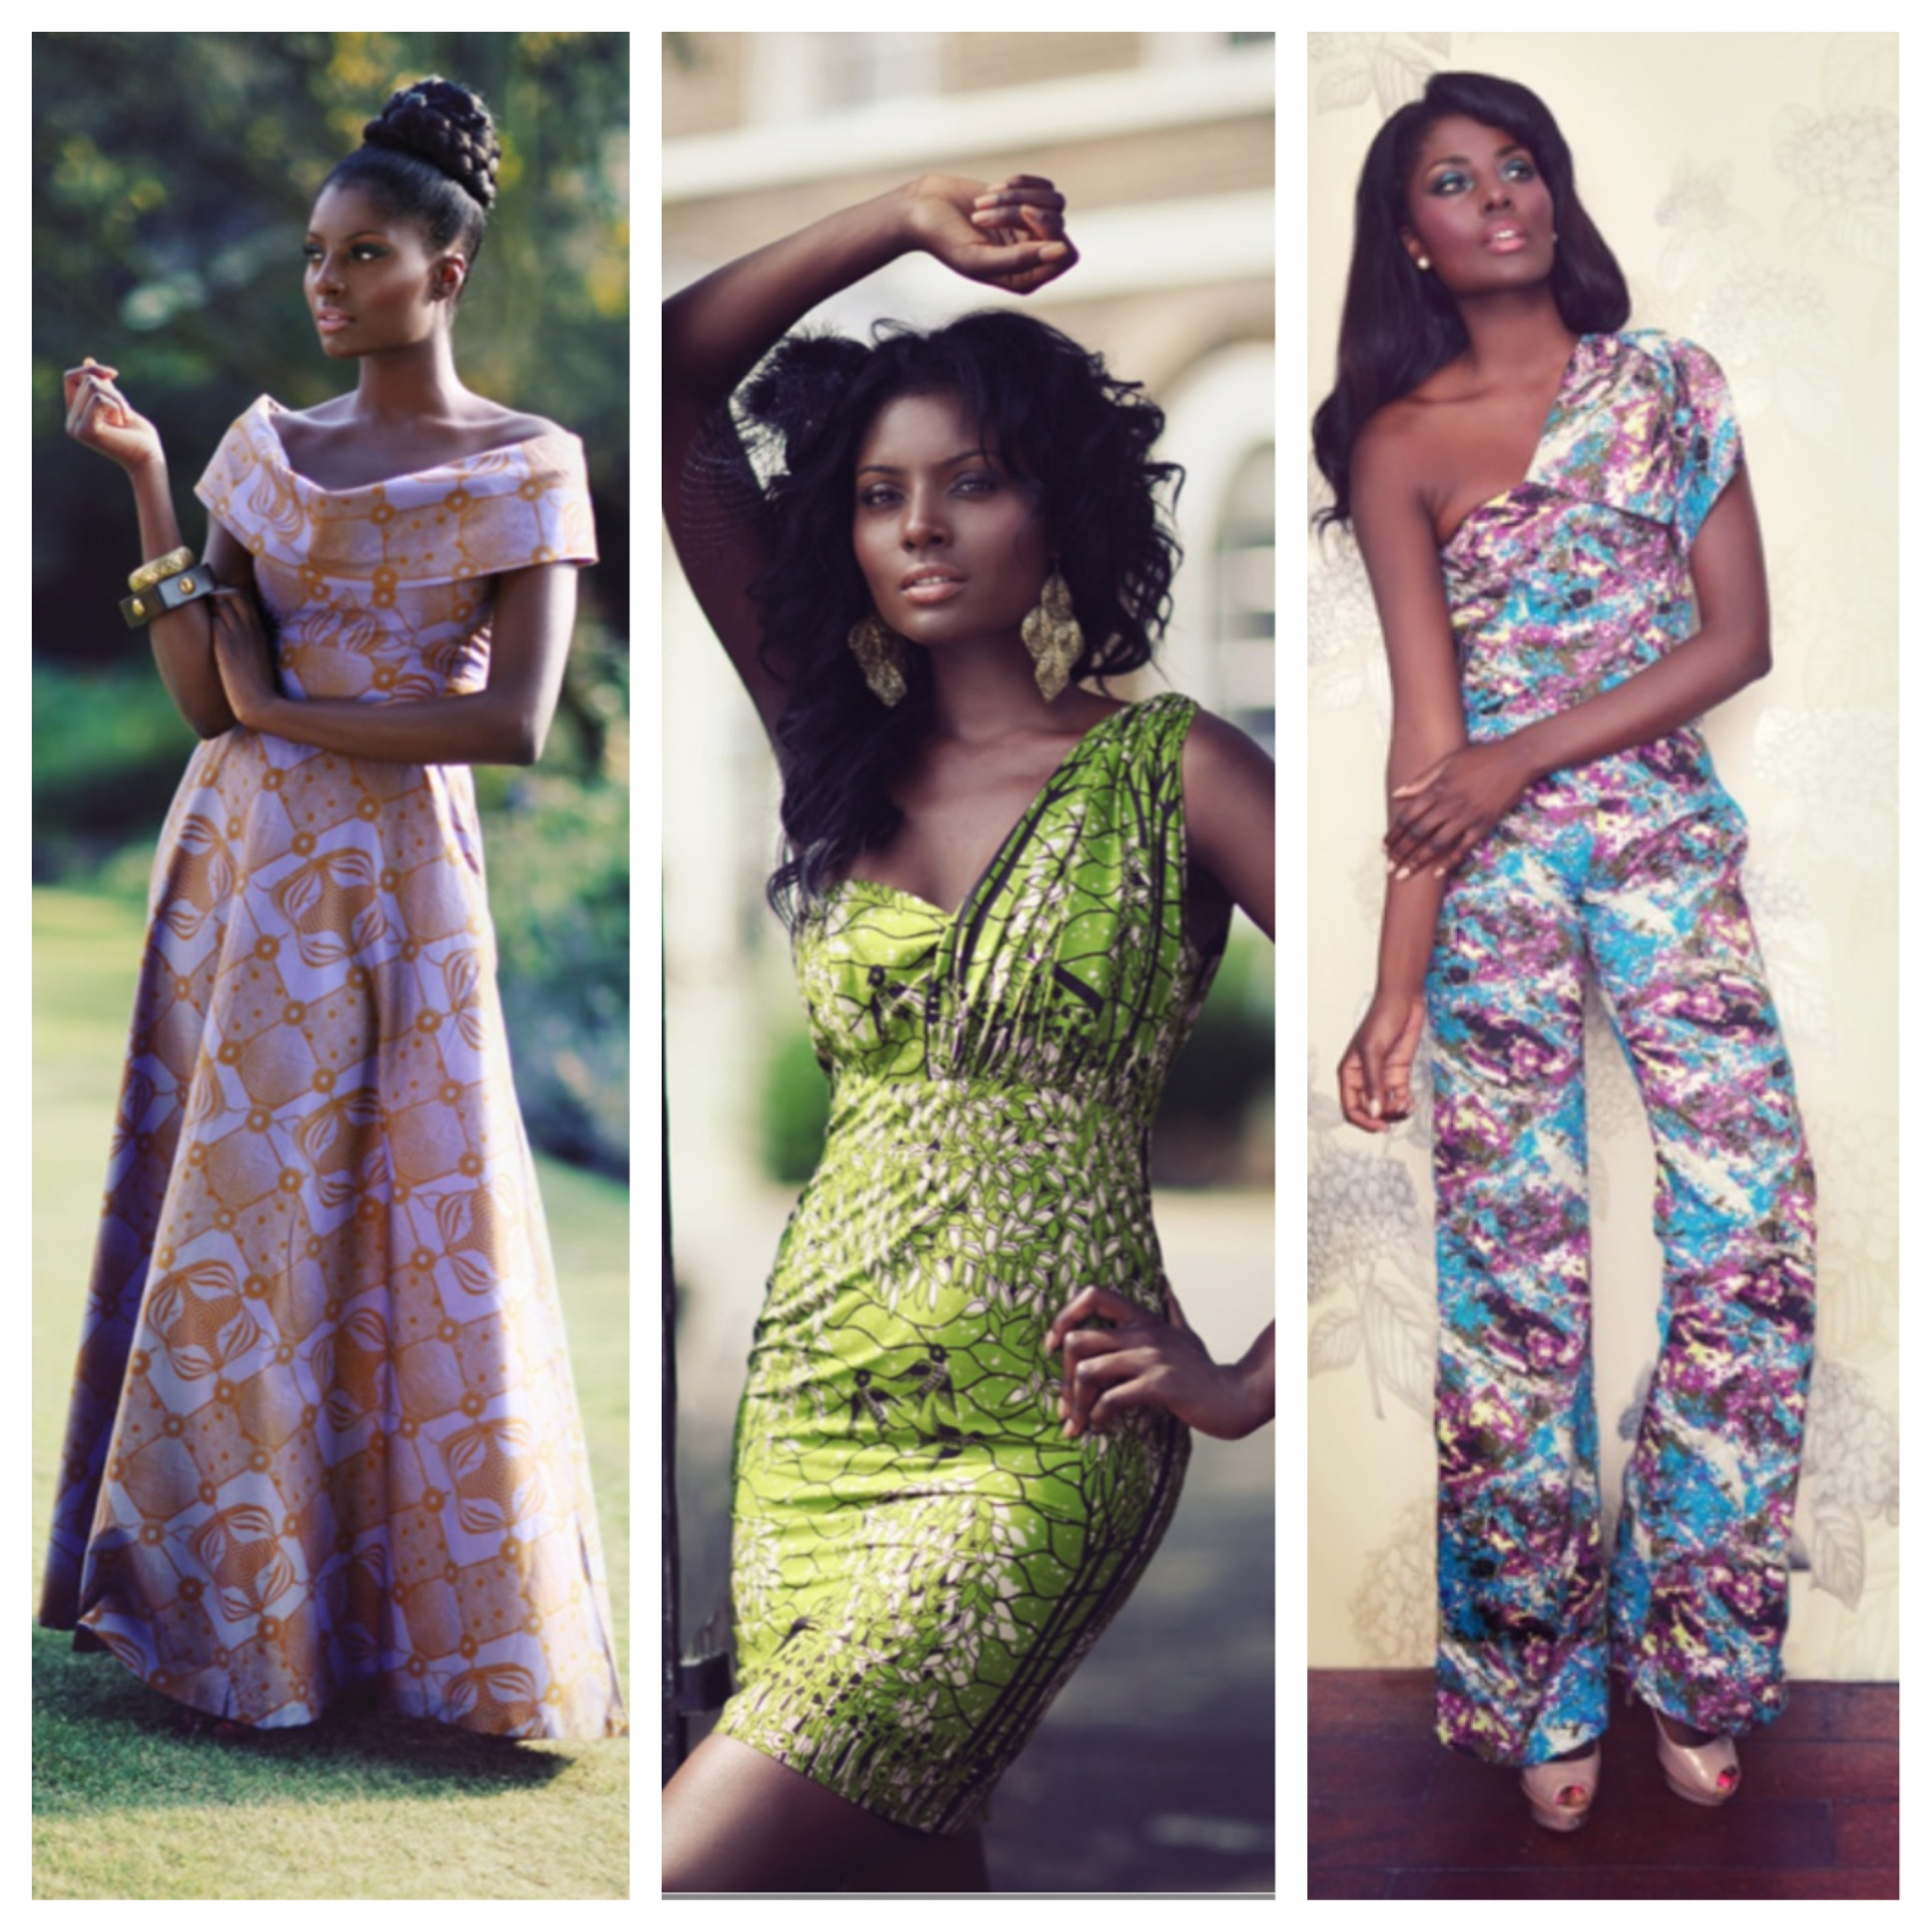 Sometimes all a gal needs is a well placed ankara pattern, and in those times SIka Designs is a go-to online shop.  The brand features clothing that is made primarily in Ghana but shipped from the UK.  Simple yet elegant, their designs can be styled to suit a range of occasions and are perfect for the girl who wants a tailored look without all of the fuss.  The styles pictured above are available  here . Photos from the Sika Designs Website